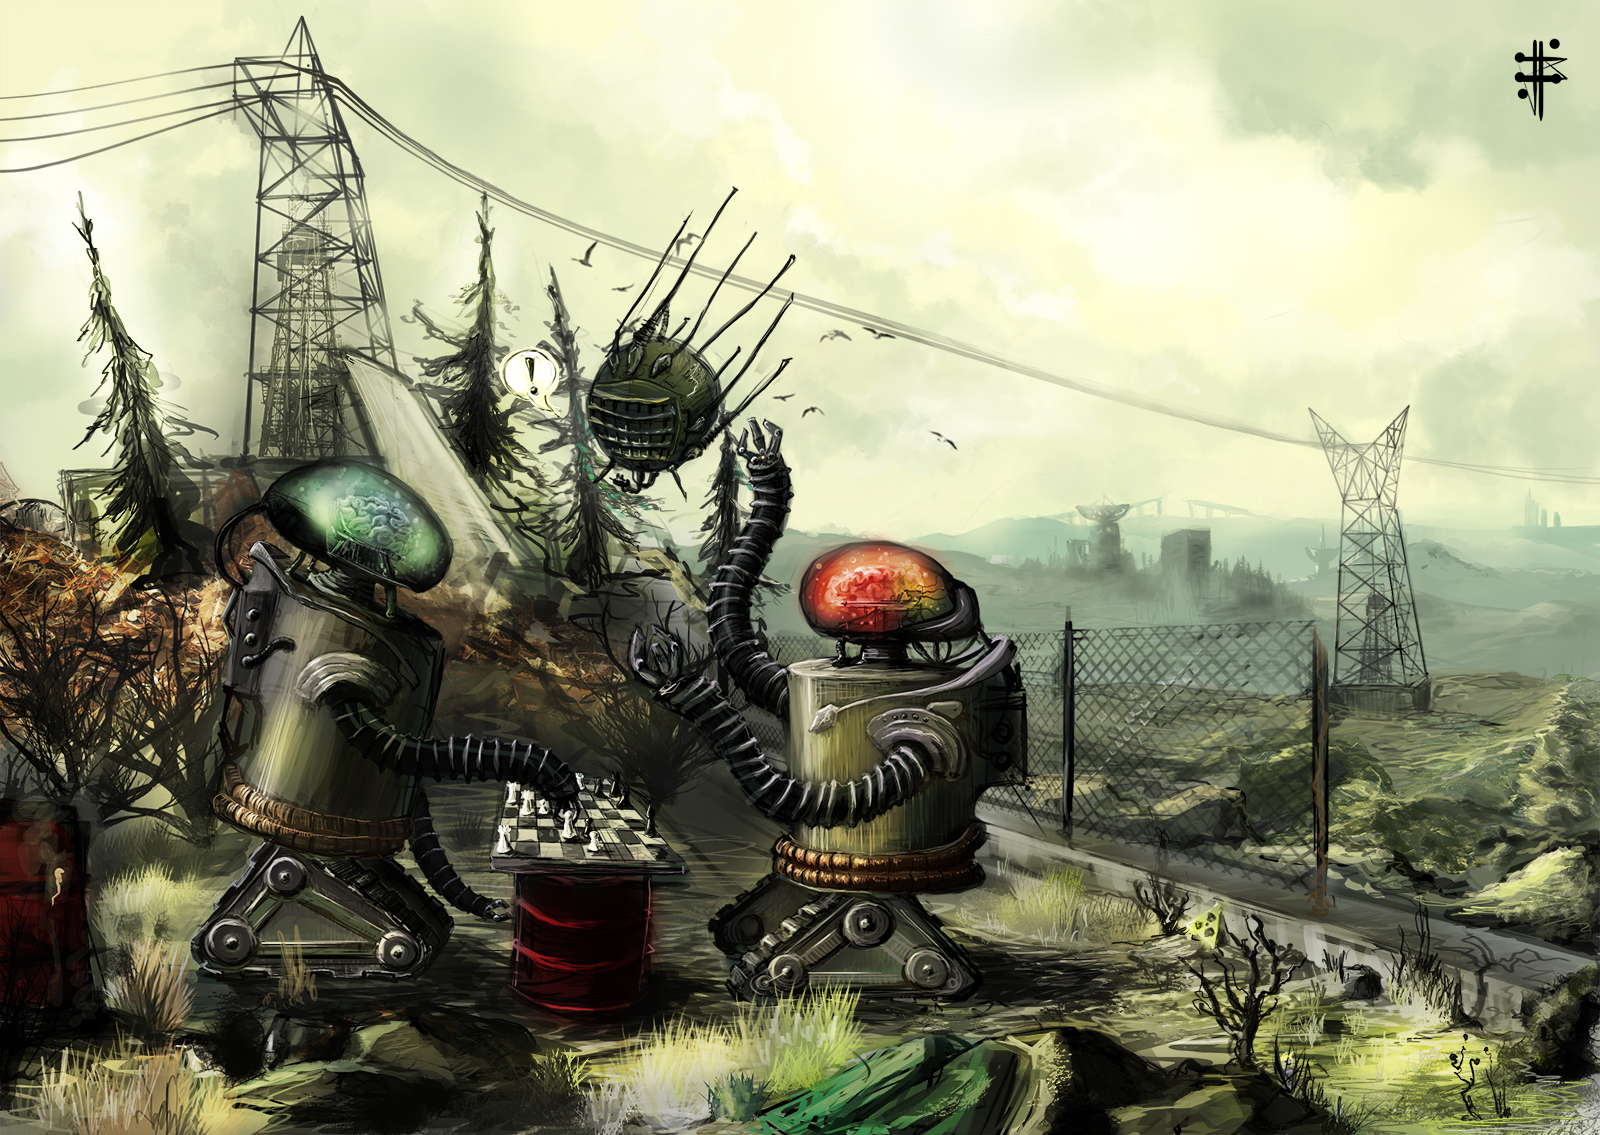 fallout 3 wallpapers hd 24 1080p. In this post, will